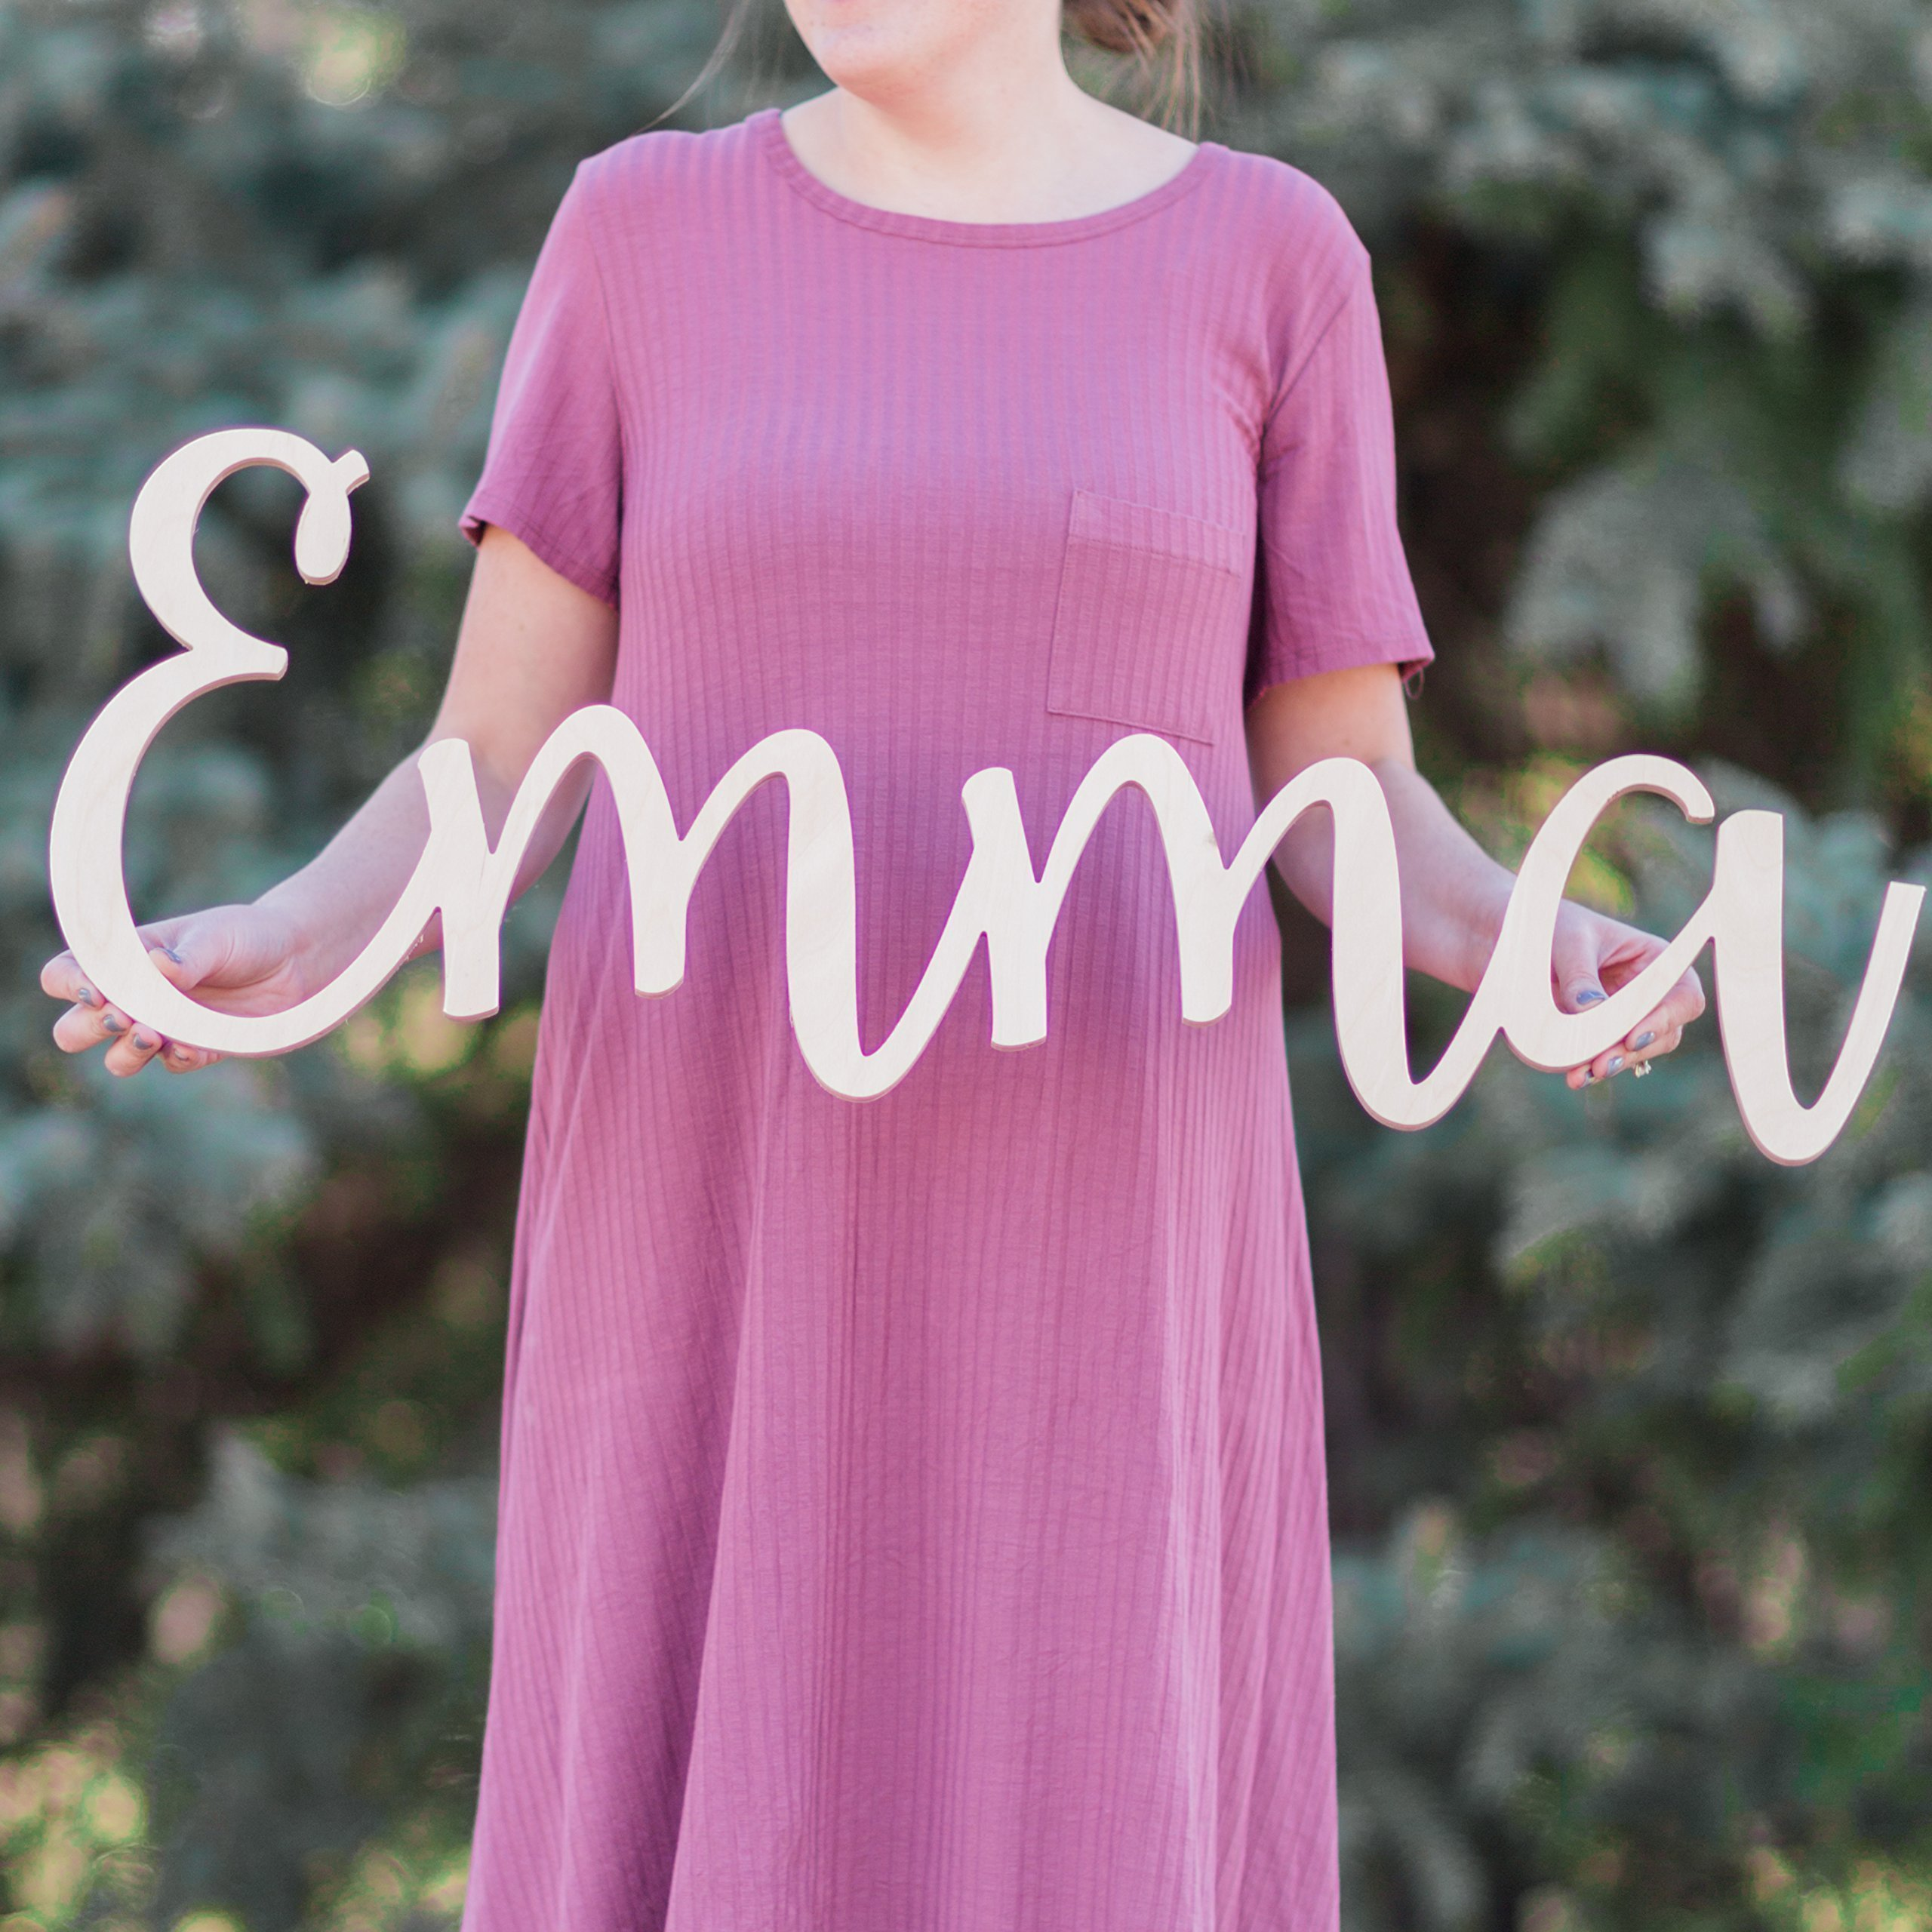 Custom Personalized Wooden Name Sign 12-55'' WIDE - Emma Font Letters Baby Name Plaque PAINTED nursery name nursery decor wooden wall art, above a crib